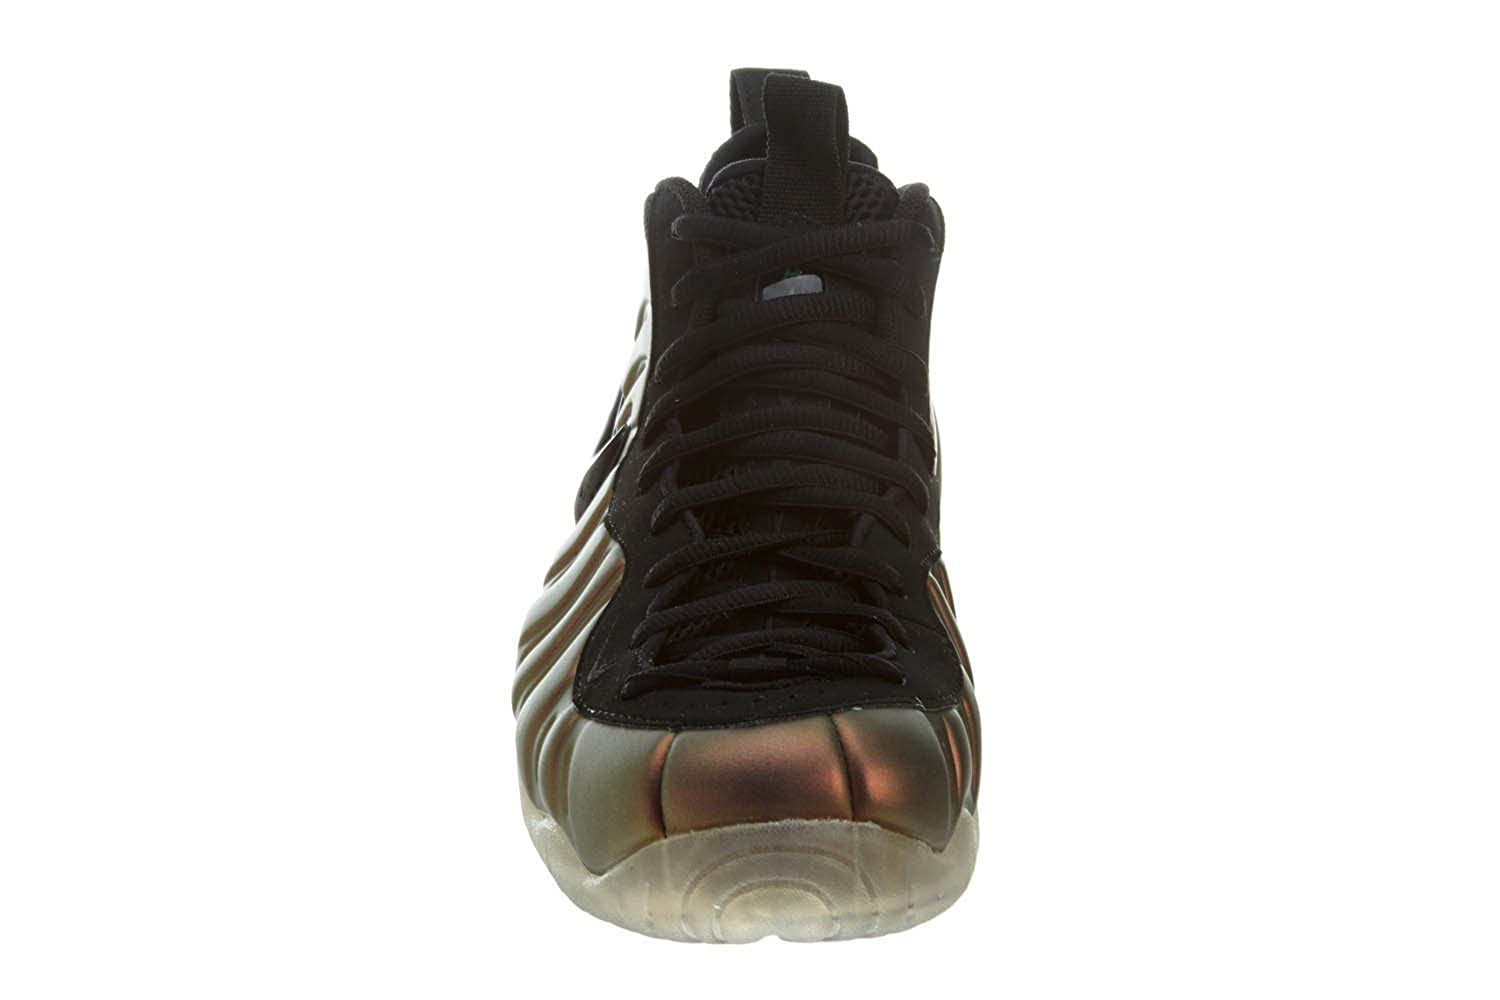 cheap for discount 3479f 77cad Amazon.com   Nike Air Foamposite Pro Men s Basketball Shoes   Basketball